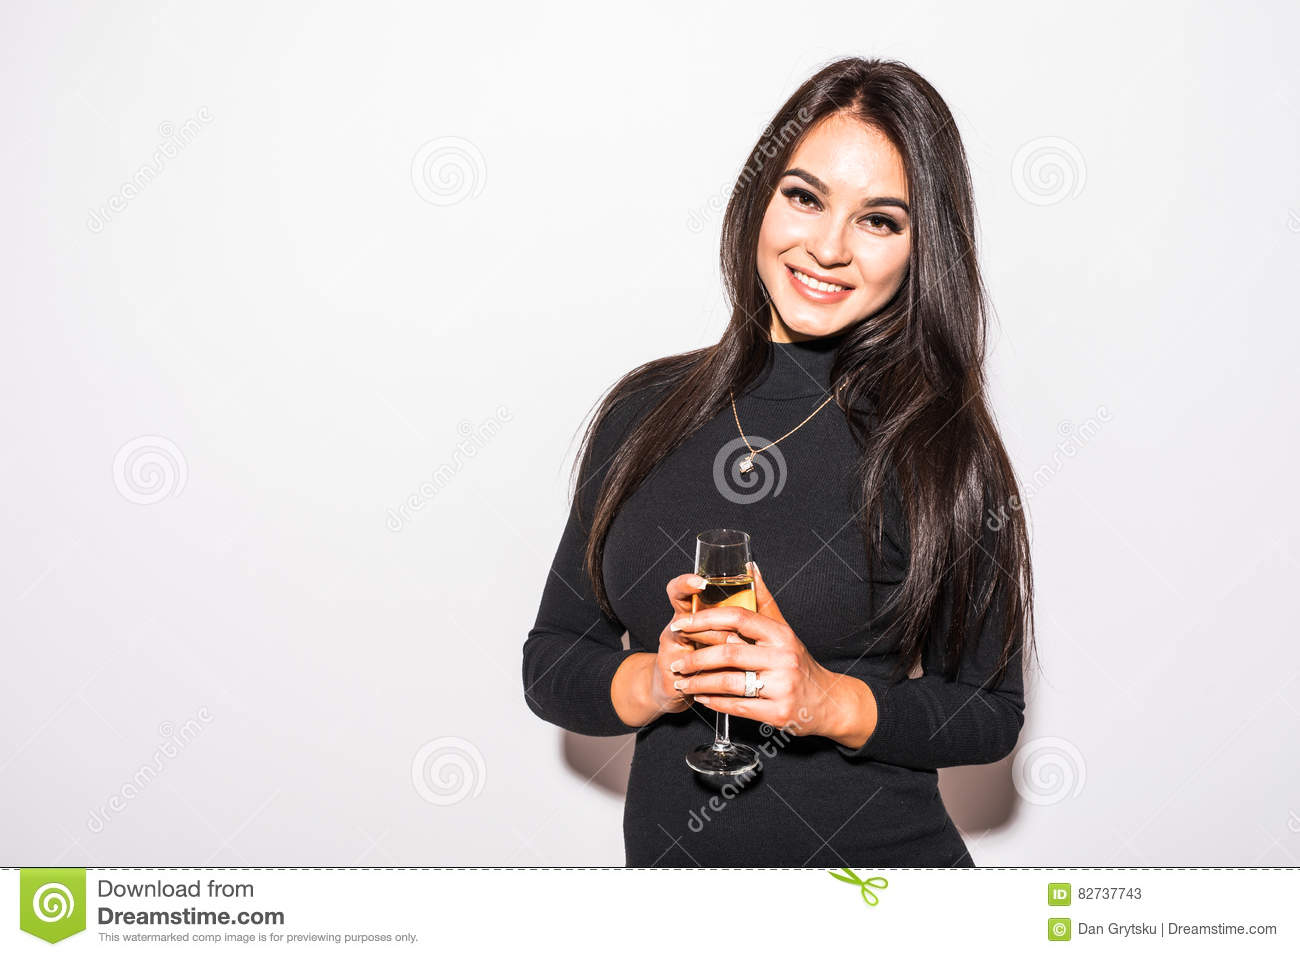 426d746c411f Pretty young woman in black dress drinking champagne over white background